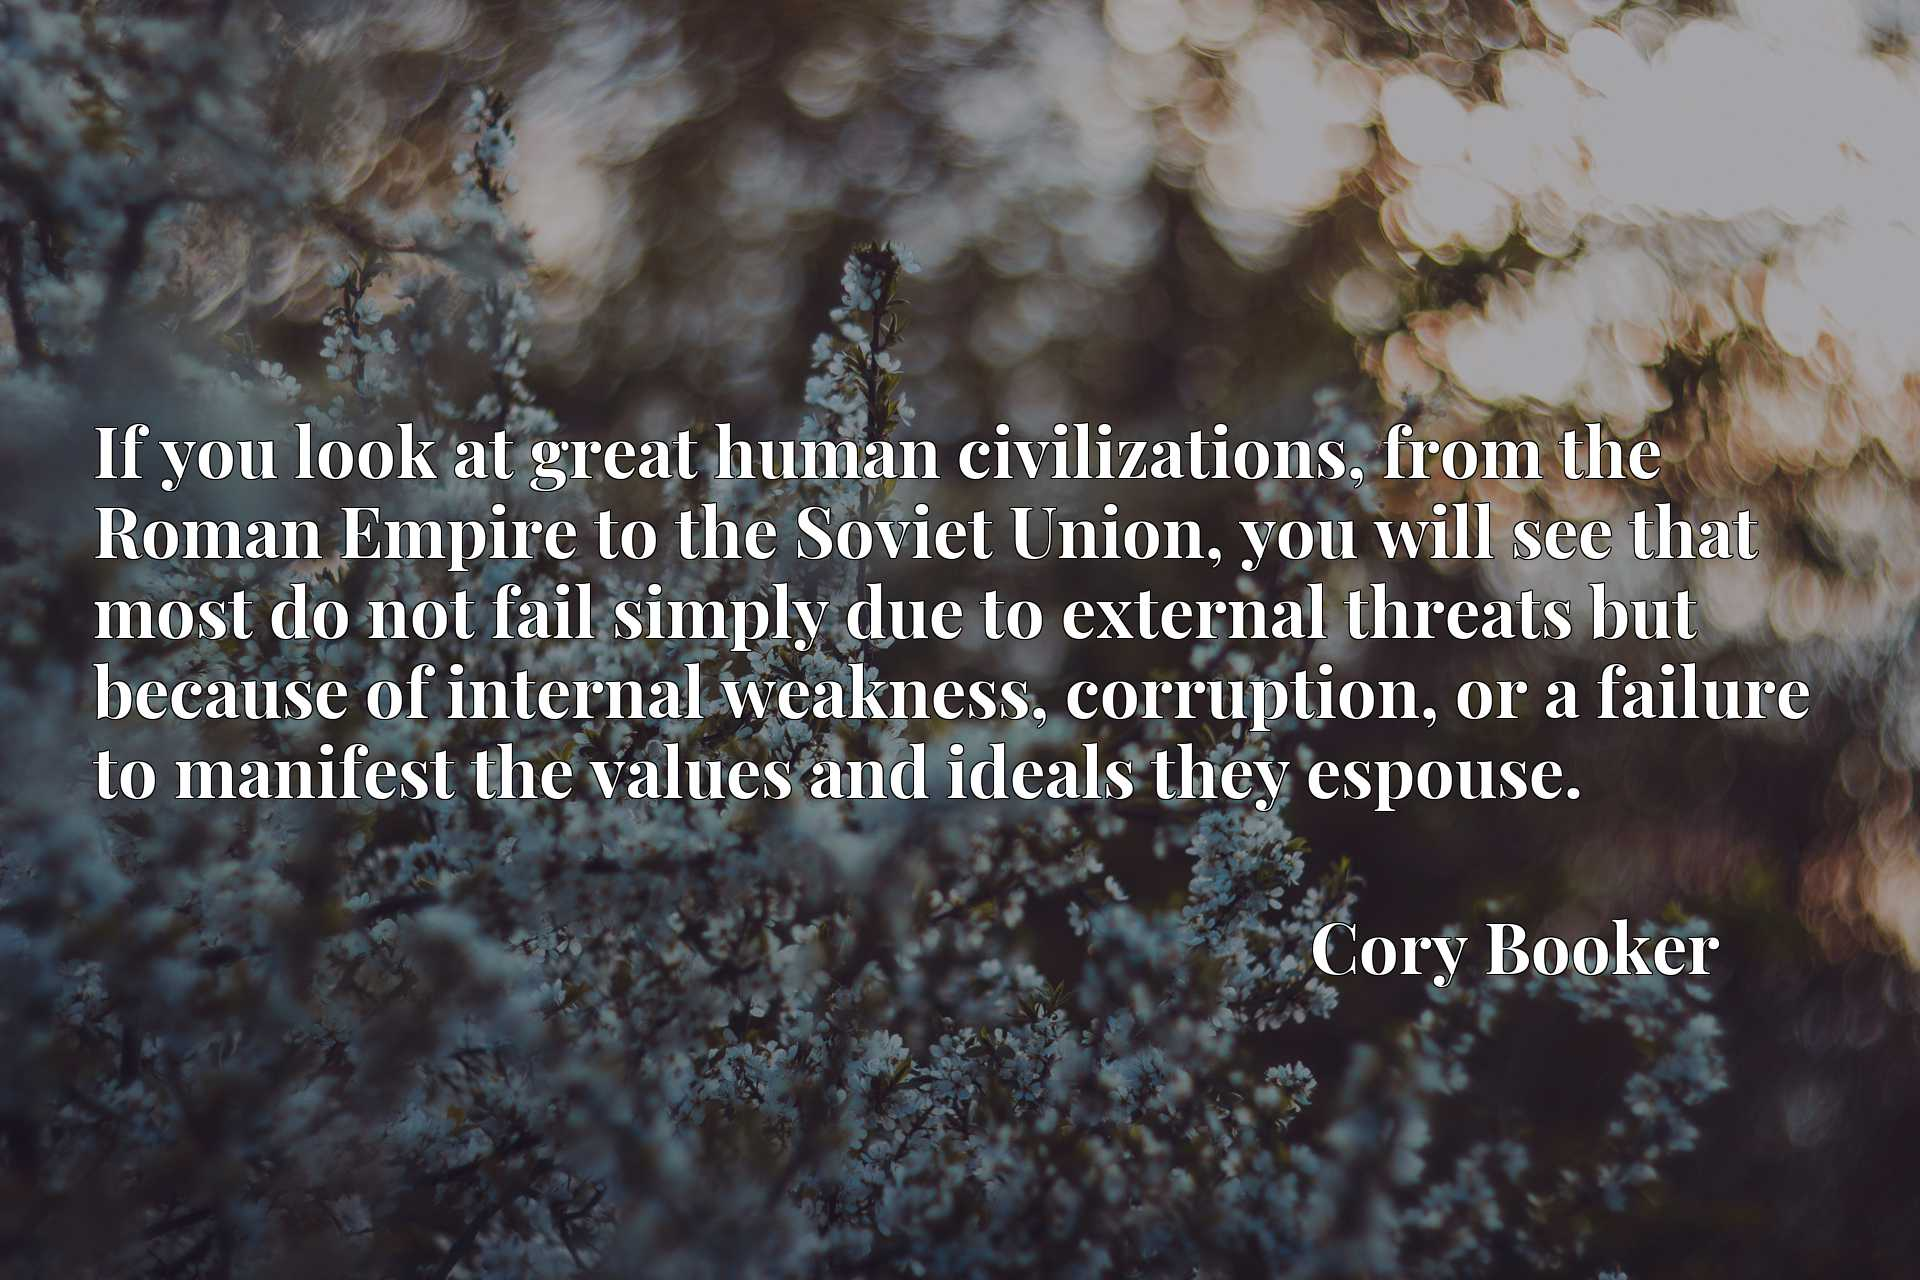 If you look at great human civilizations, from the Roman Empire to the Soviet Union, you will see that most do not fail simply due to external threats but because of internal weakness, corruption, or a failure to manifest the values and ideals they espouse.